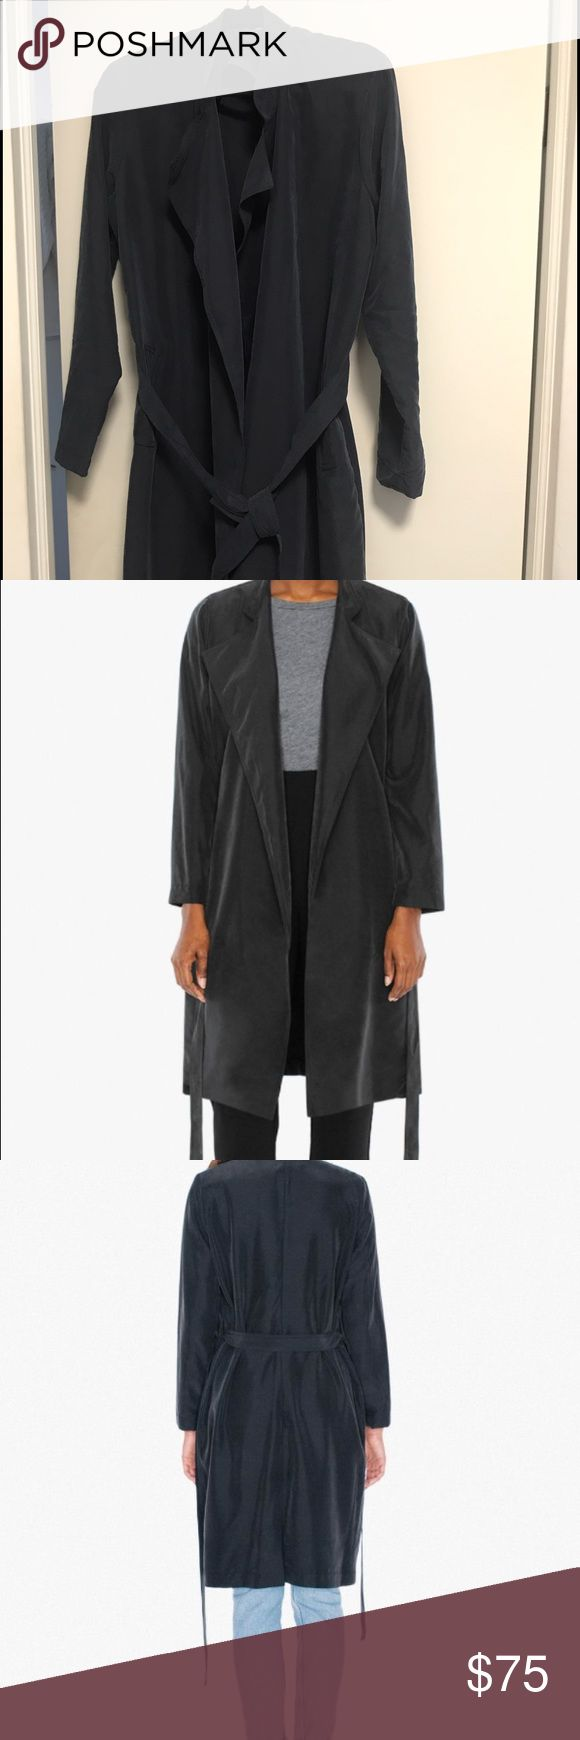 A navy blue American Apparel trench coat It's light-weight, cute and can be worn anytime :) American Apparel Jackets & Coats Trench Coats